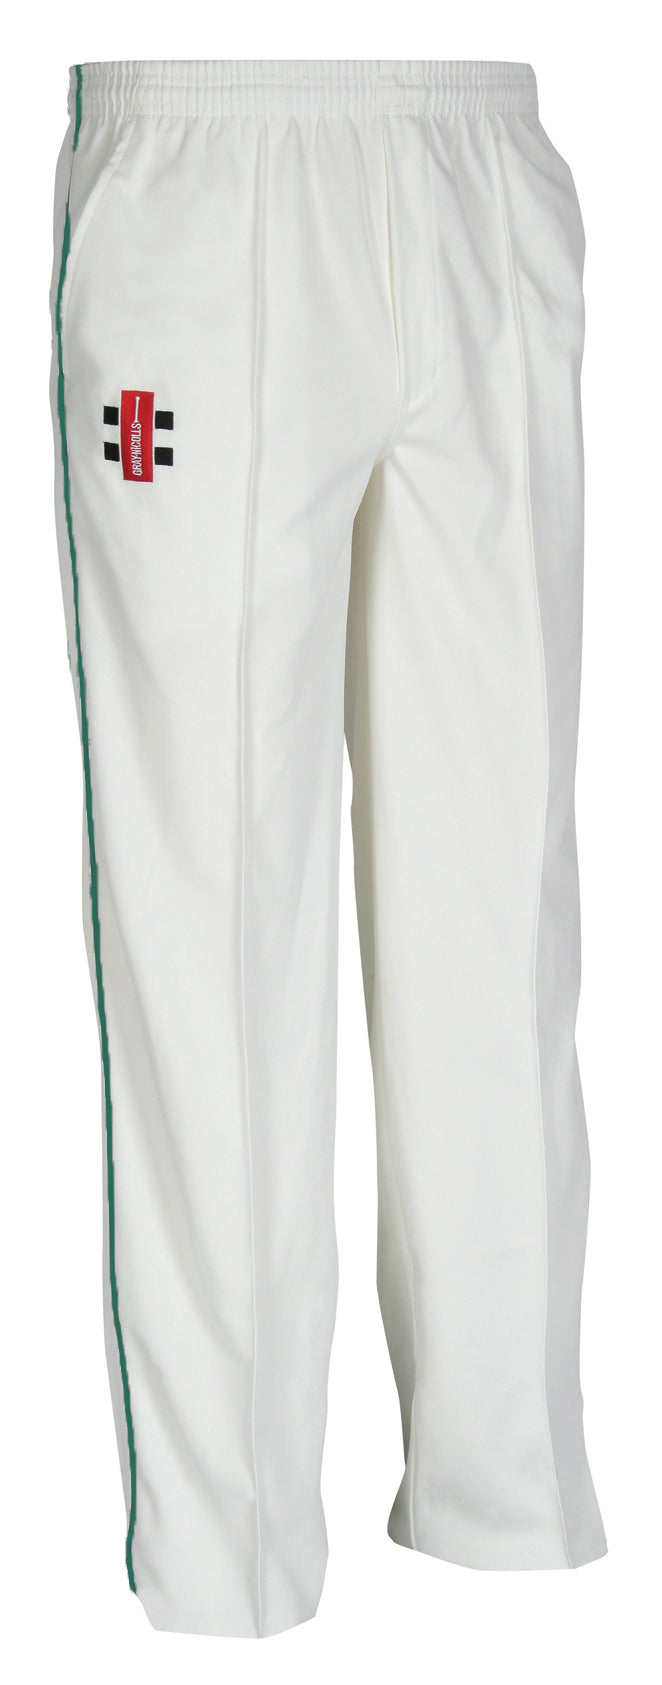 Gray Nicolls Matrix Ivory Trim Cricket Trousers Sizes XXS XXXL